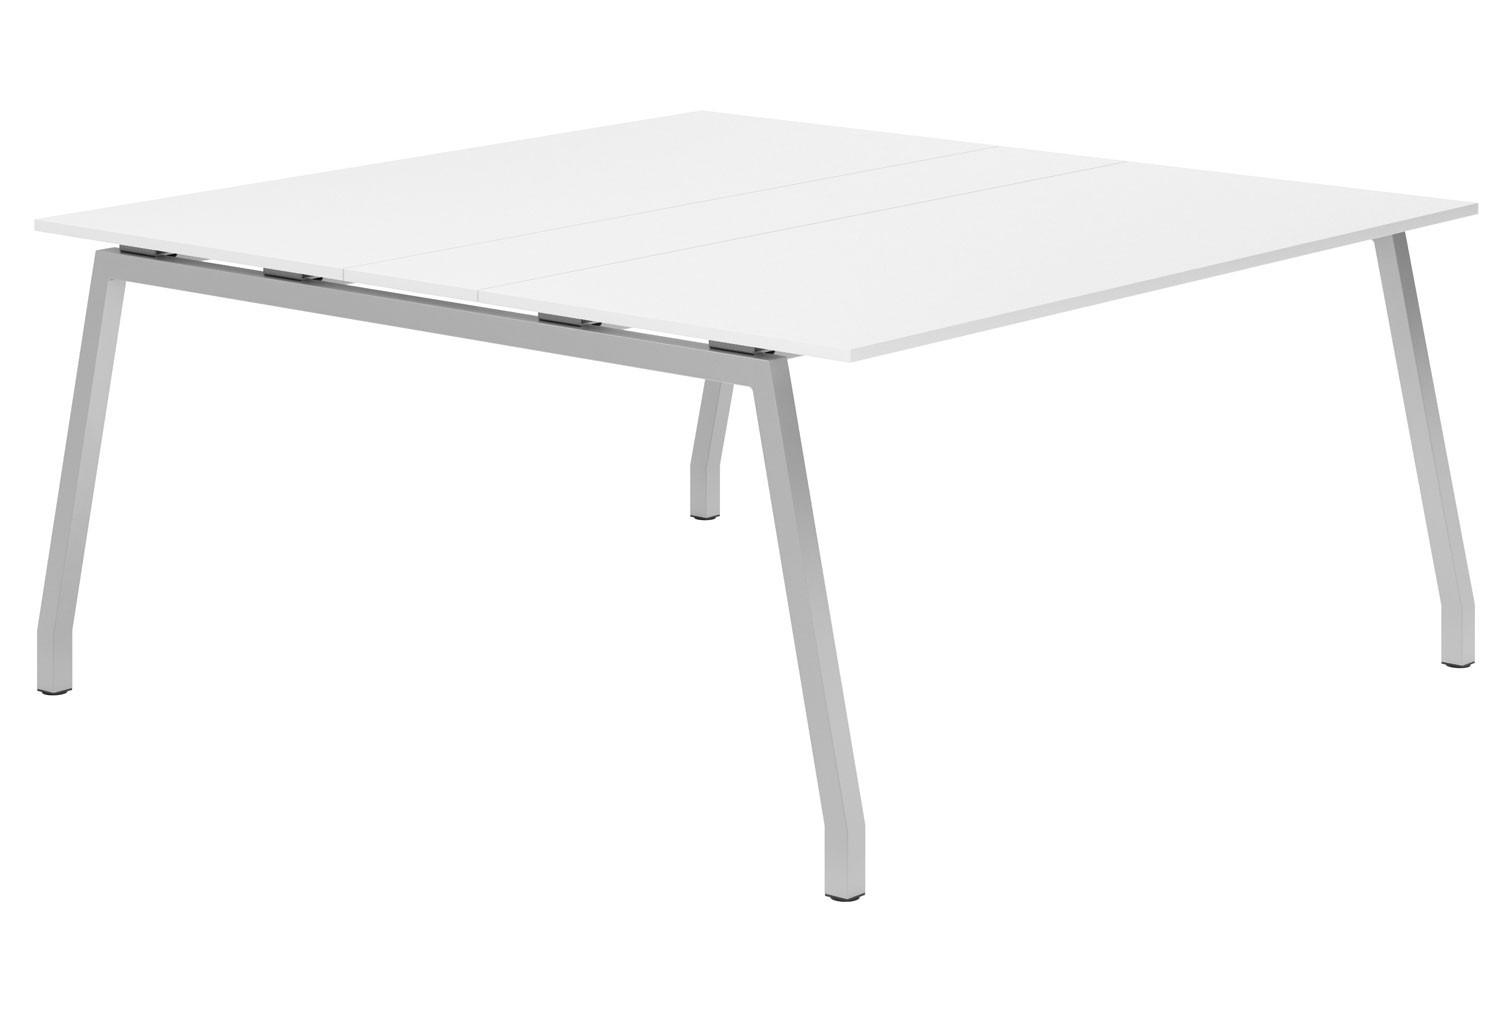 Campos A-Frame 6-8 Person Meeting Table (White)